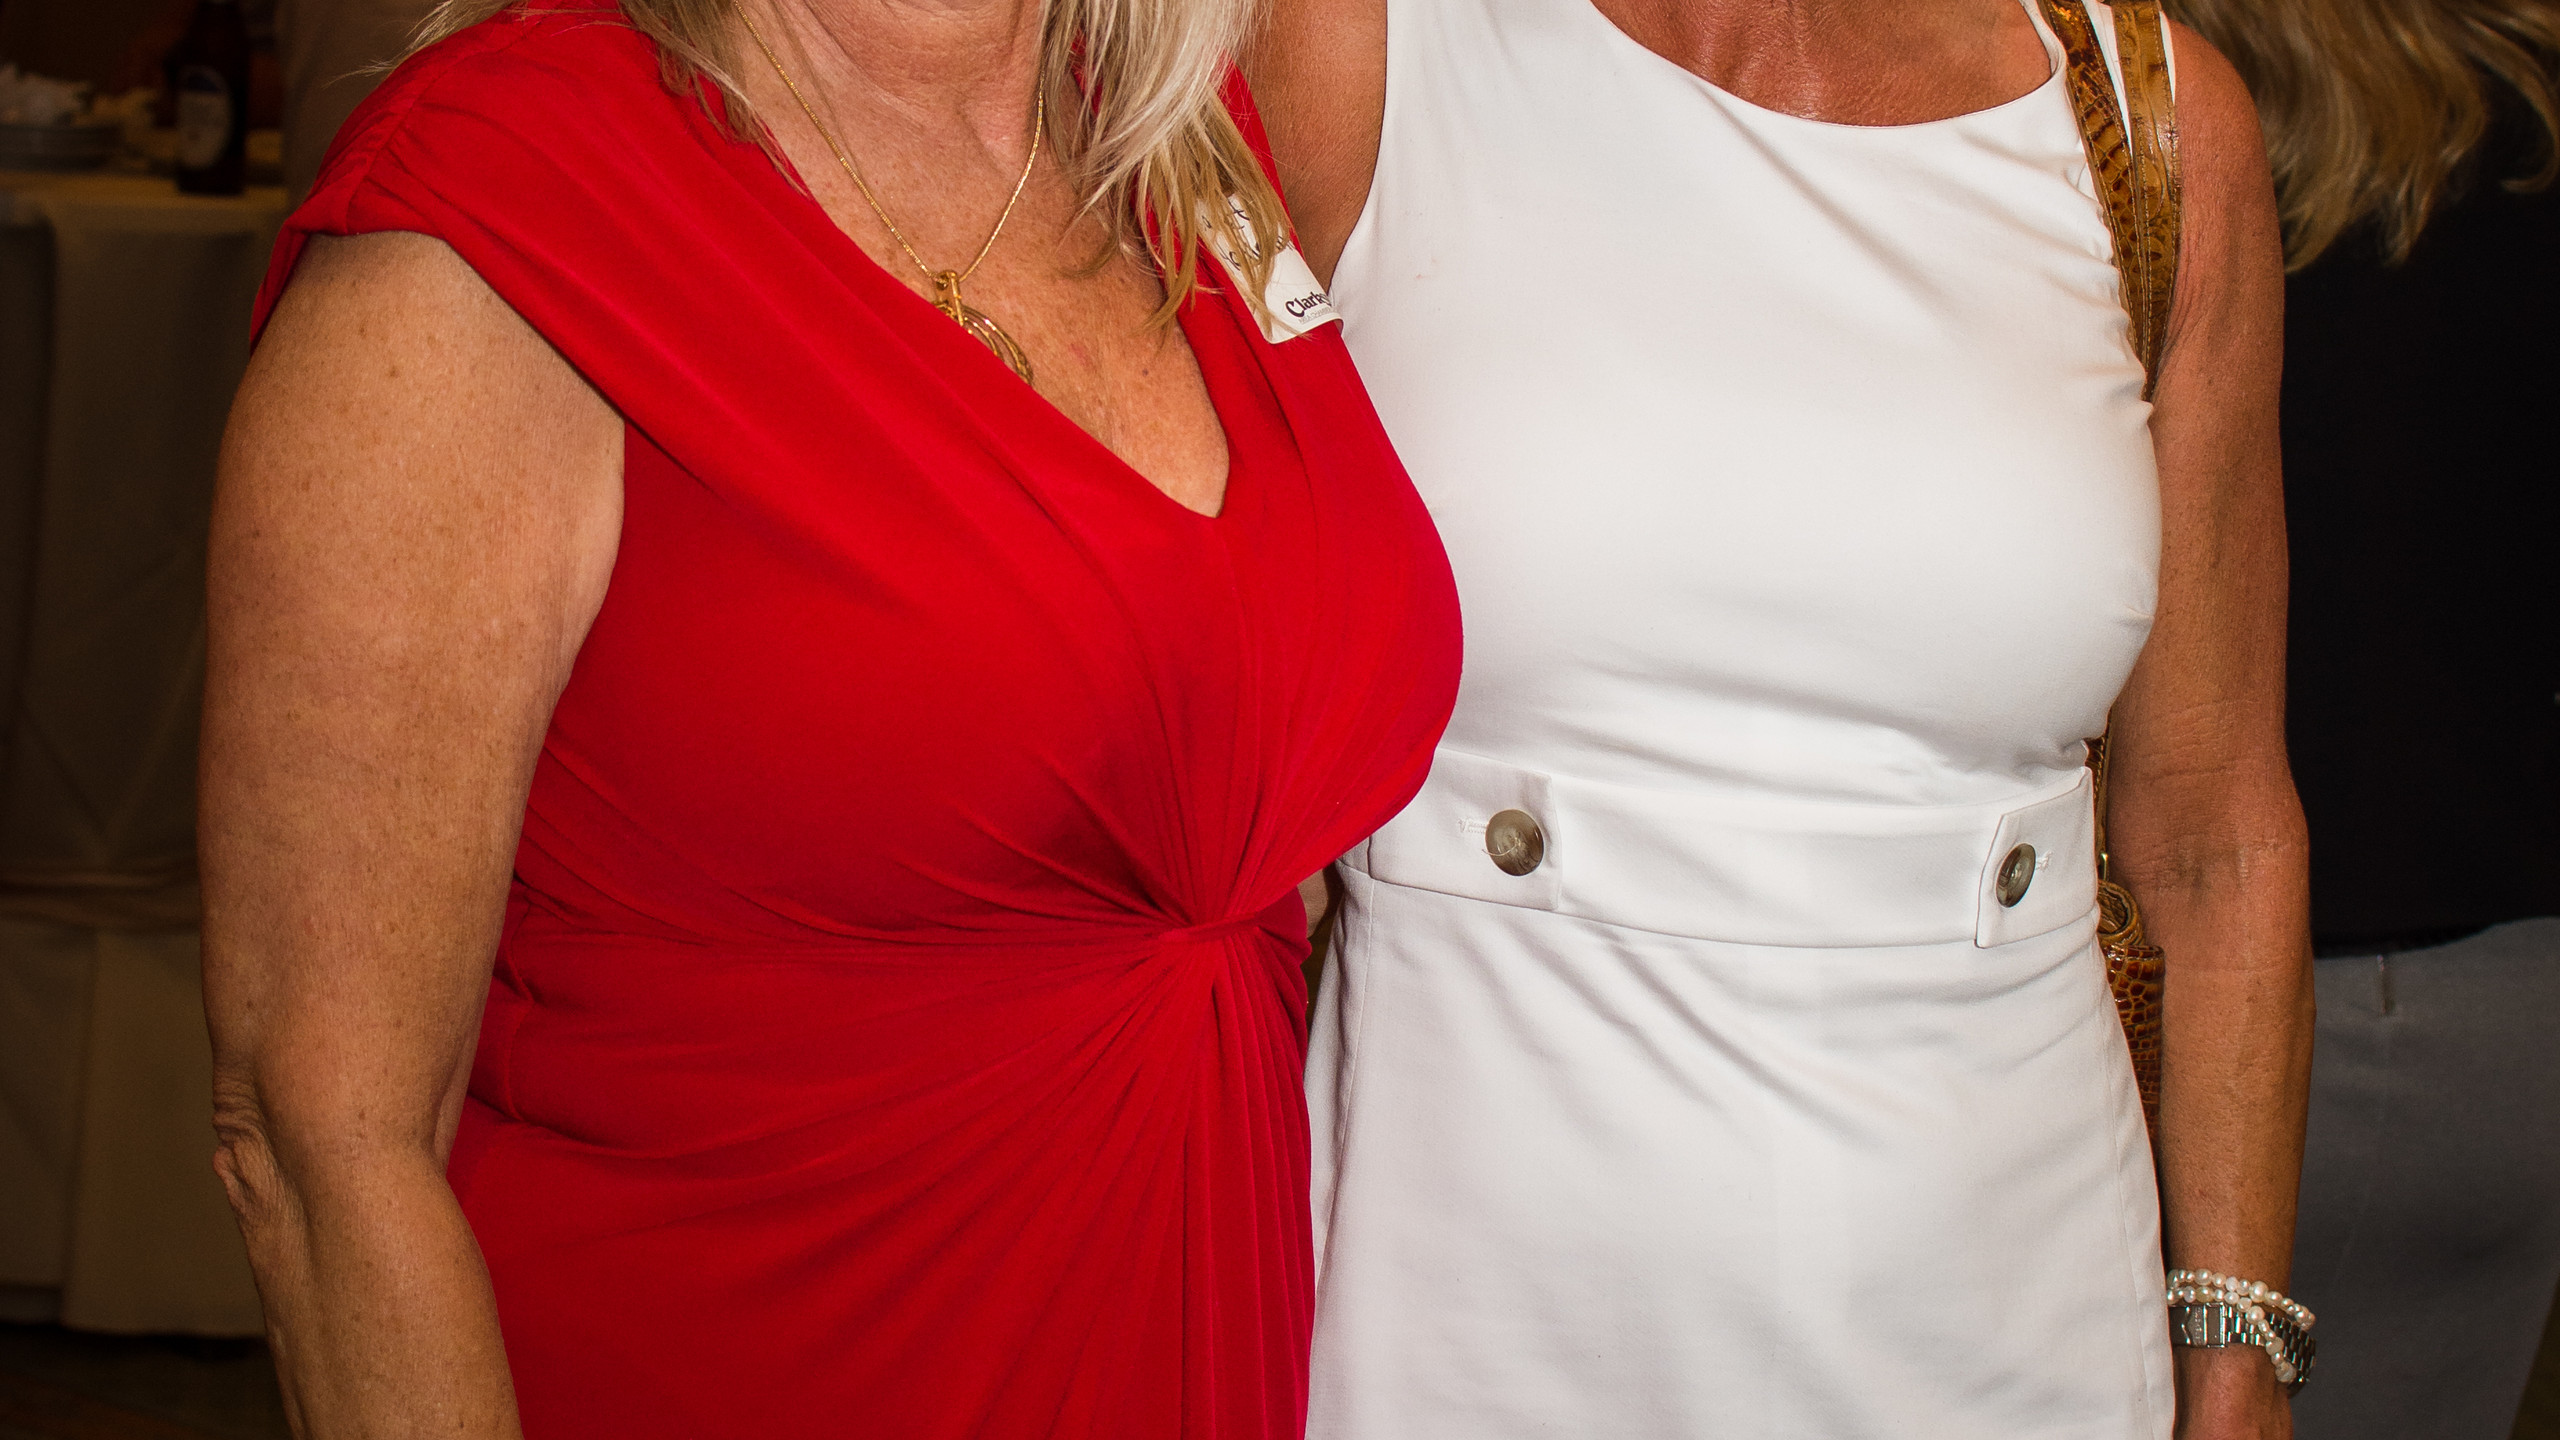 Janet Holleman and Felicia Long